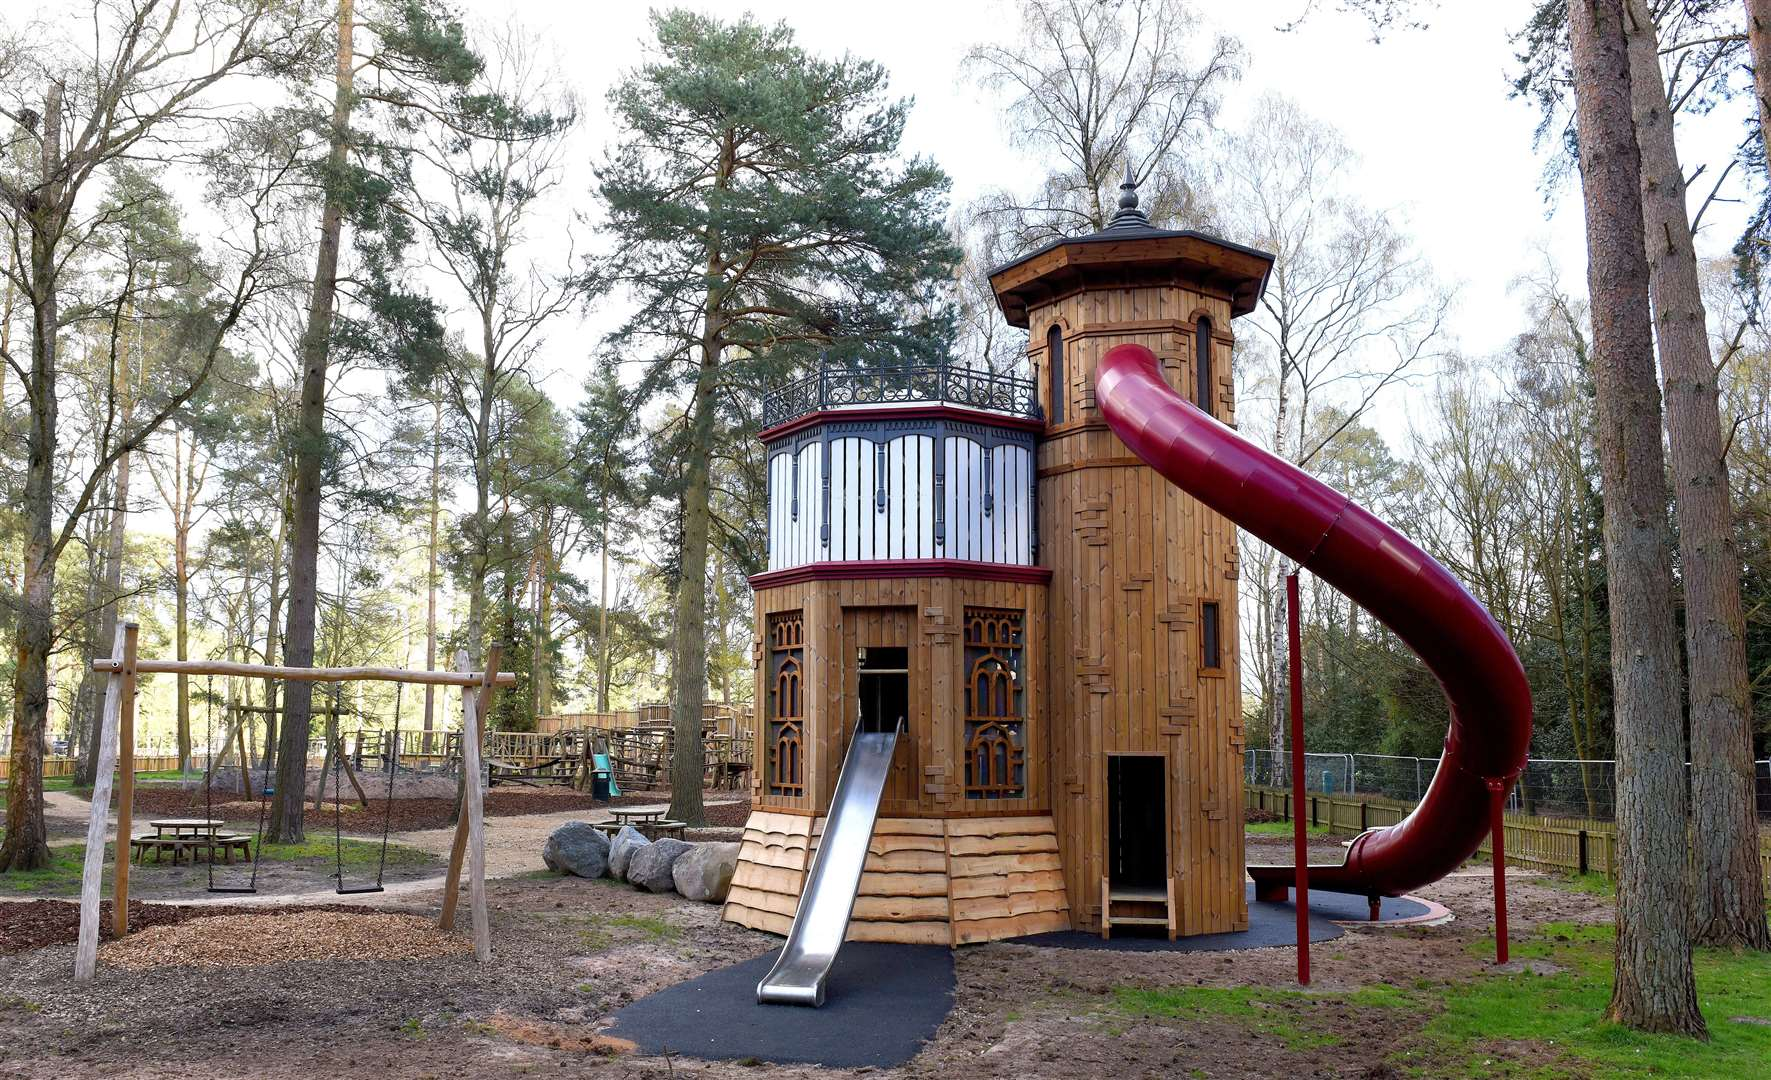 The 26-foot tower and tube slide is the centrepiece. MLNF-21PM04005